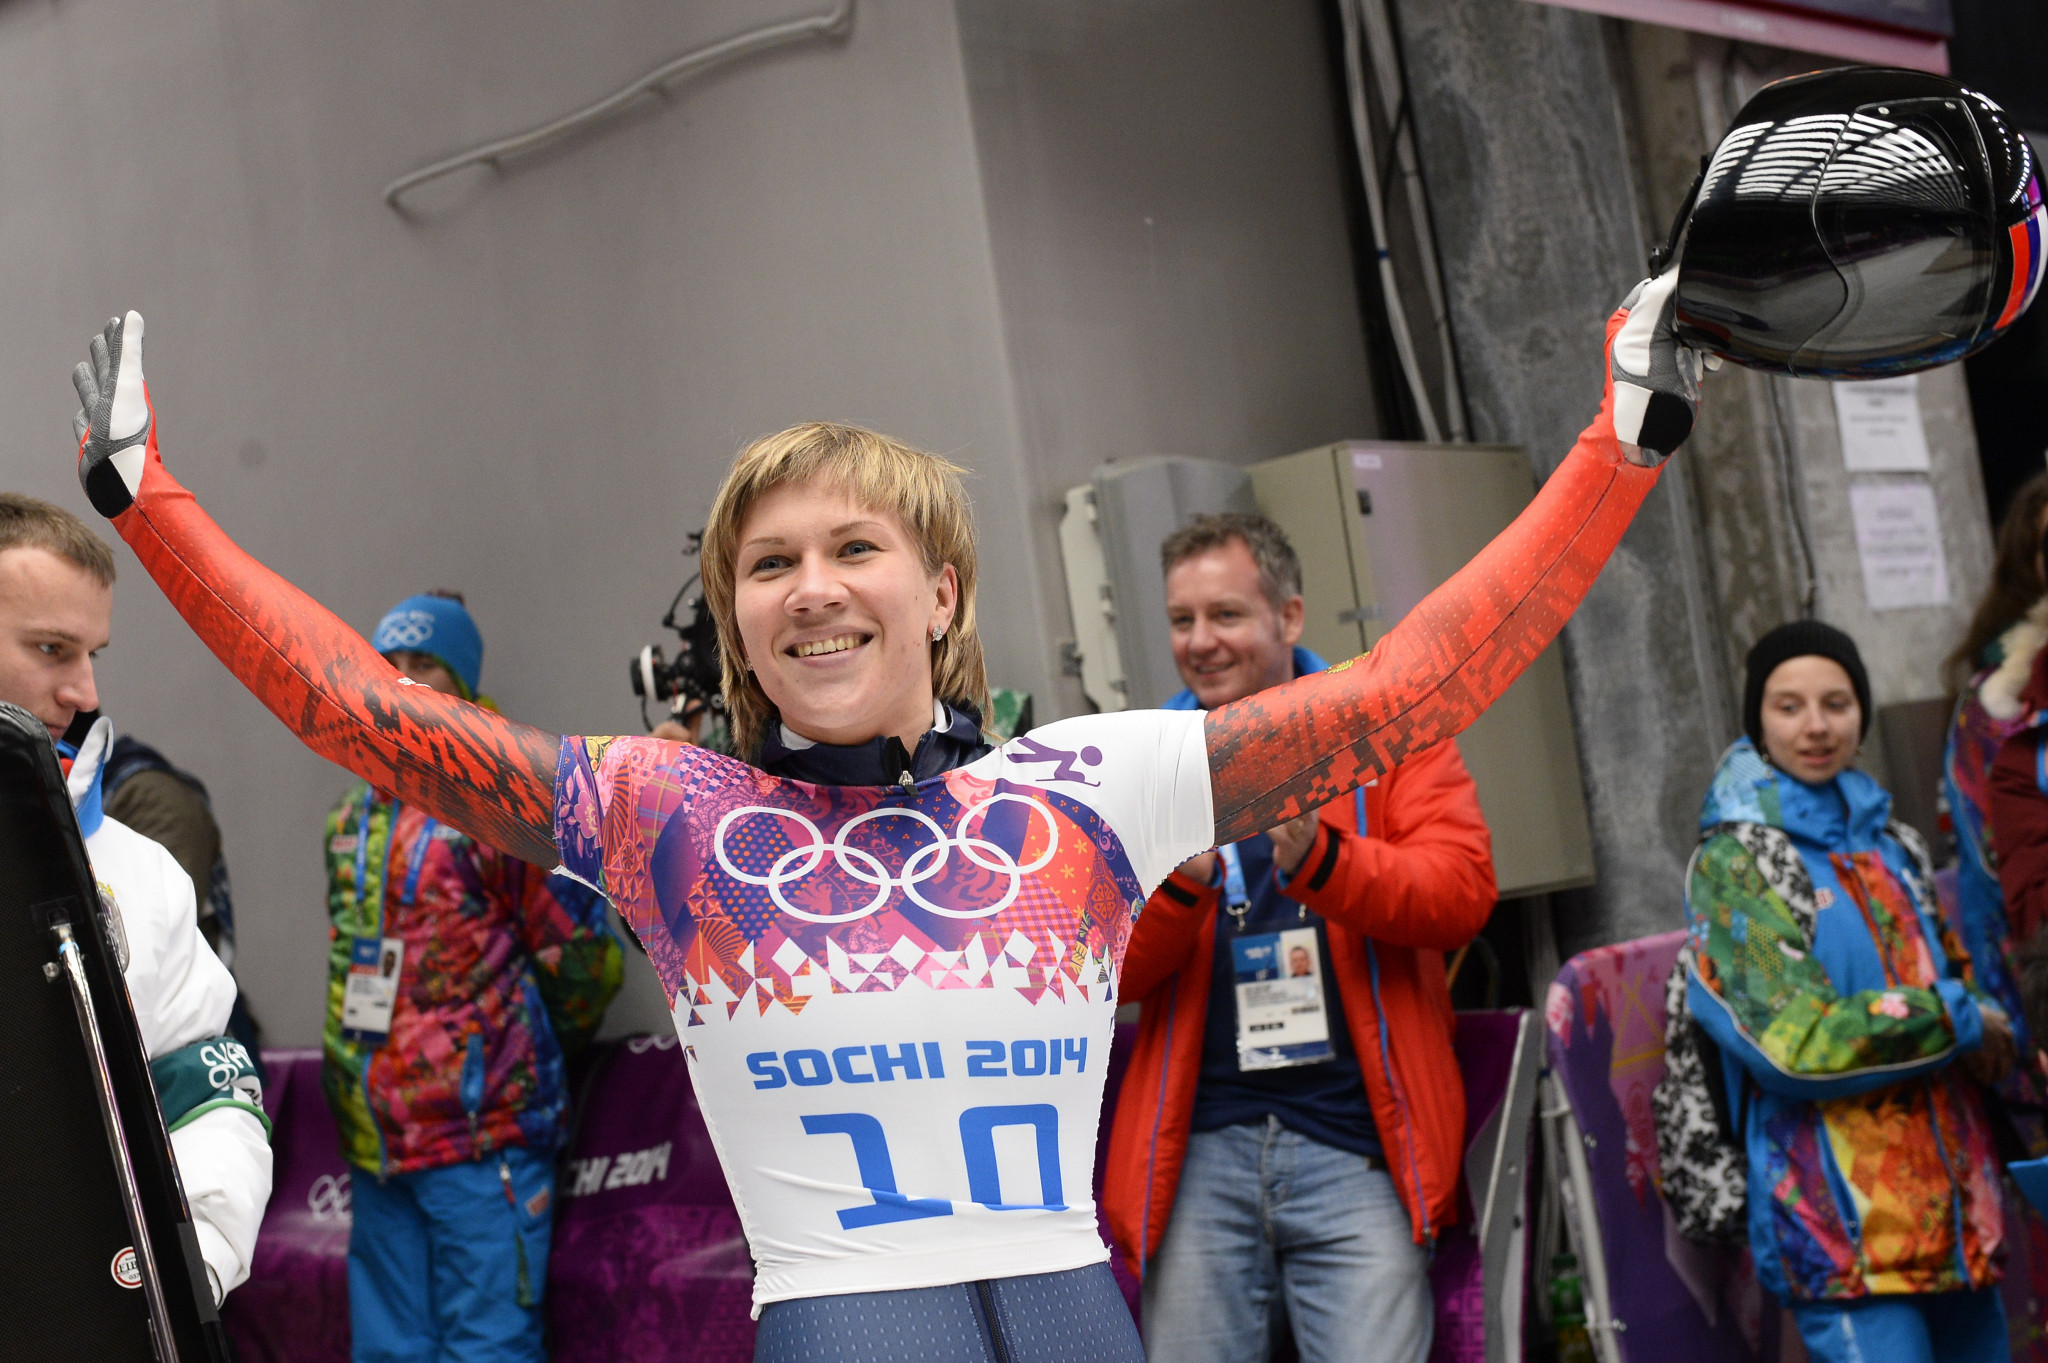 Mariia Orlova is one of those sanctioned by the IOC ©Getty Images